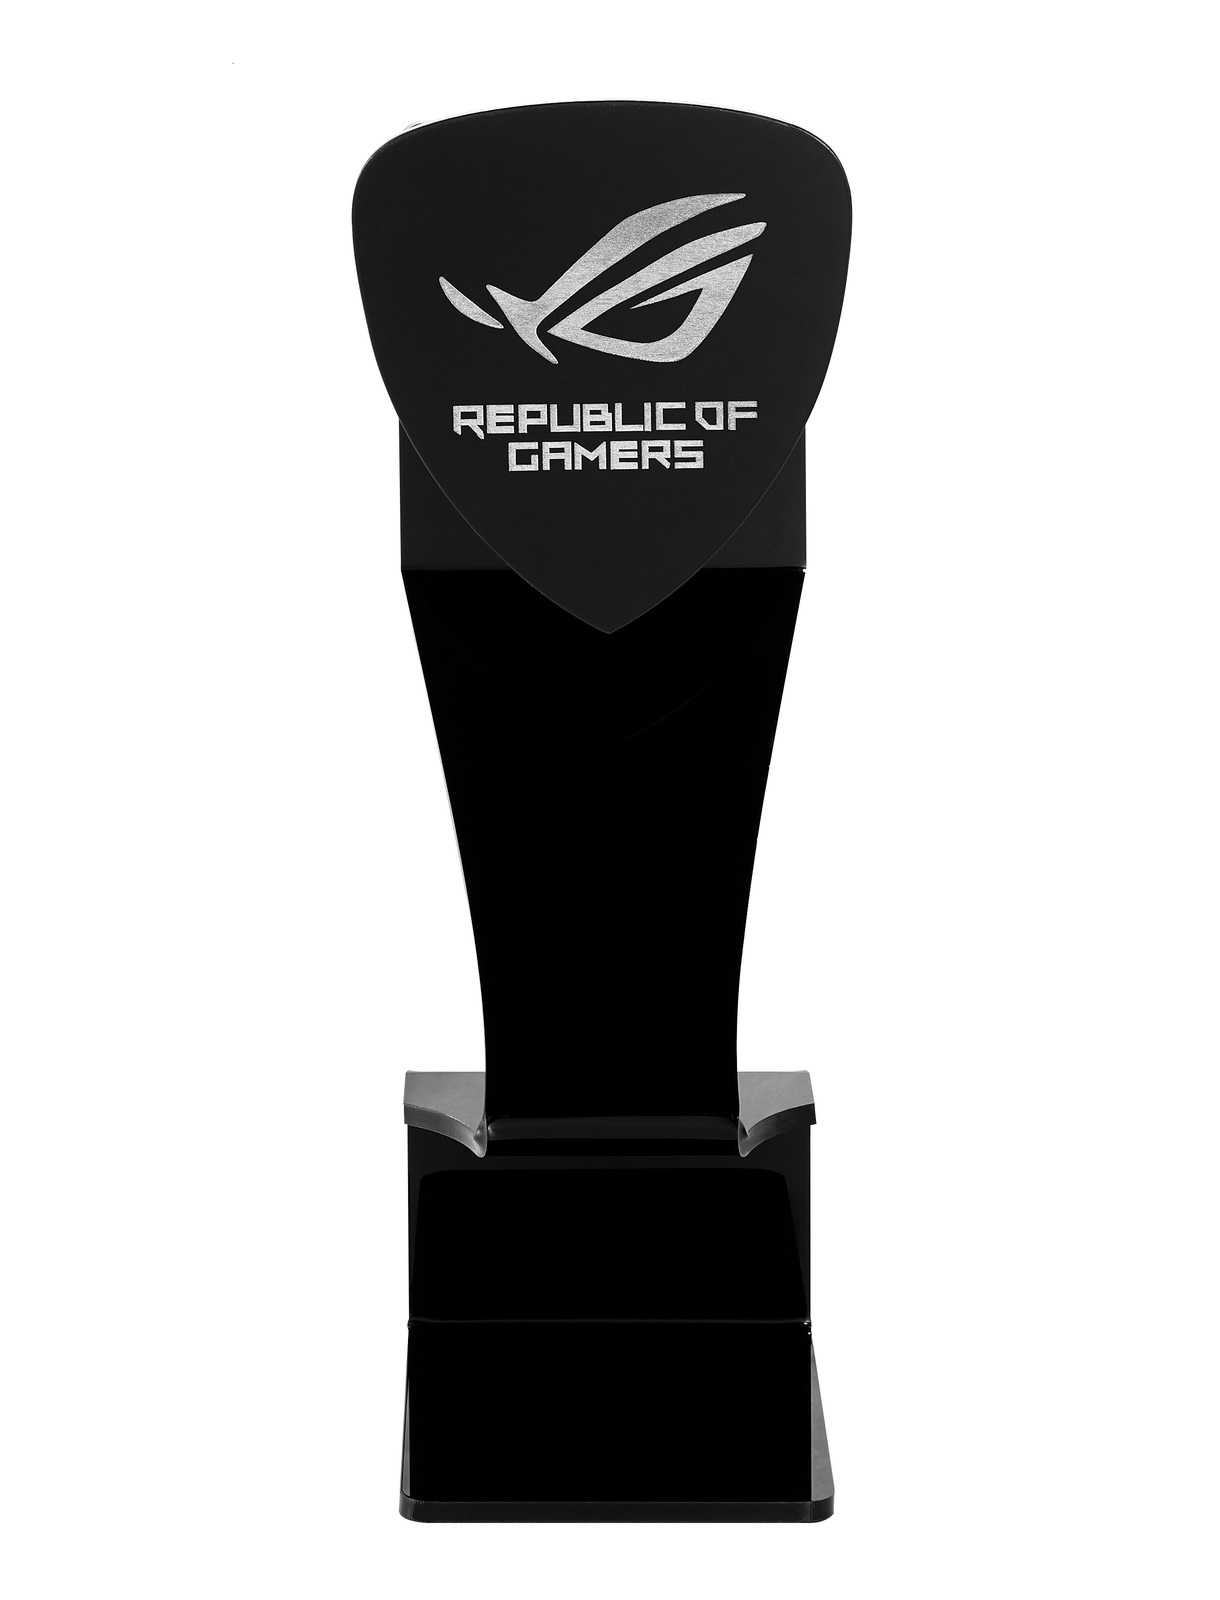 ASUS ROG Centurion 7.1 Gaming Headset for PC Games image